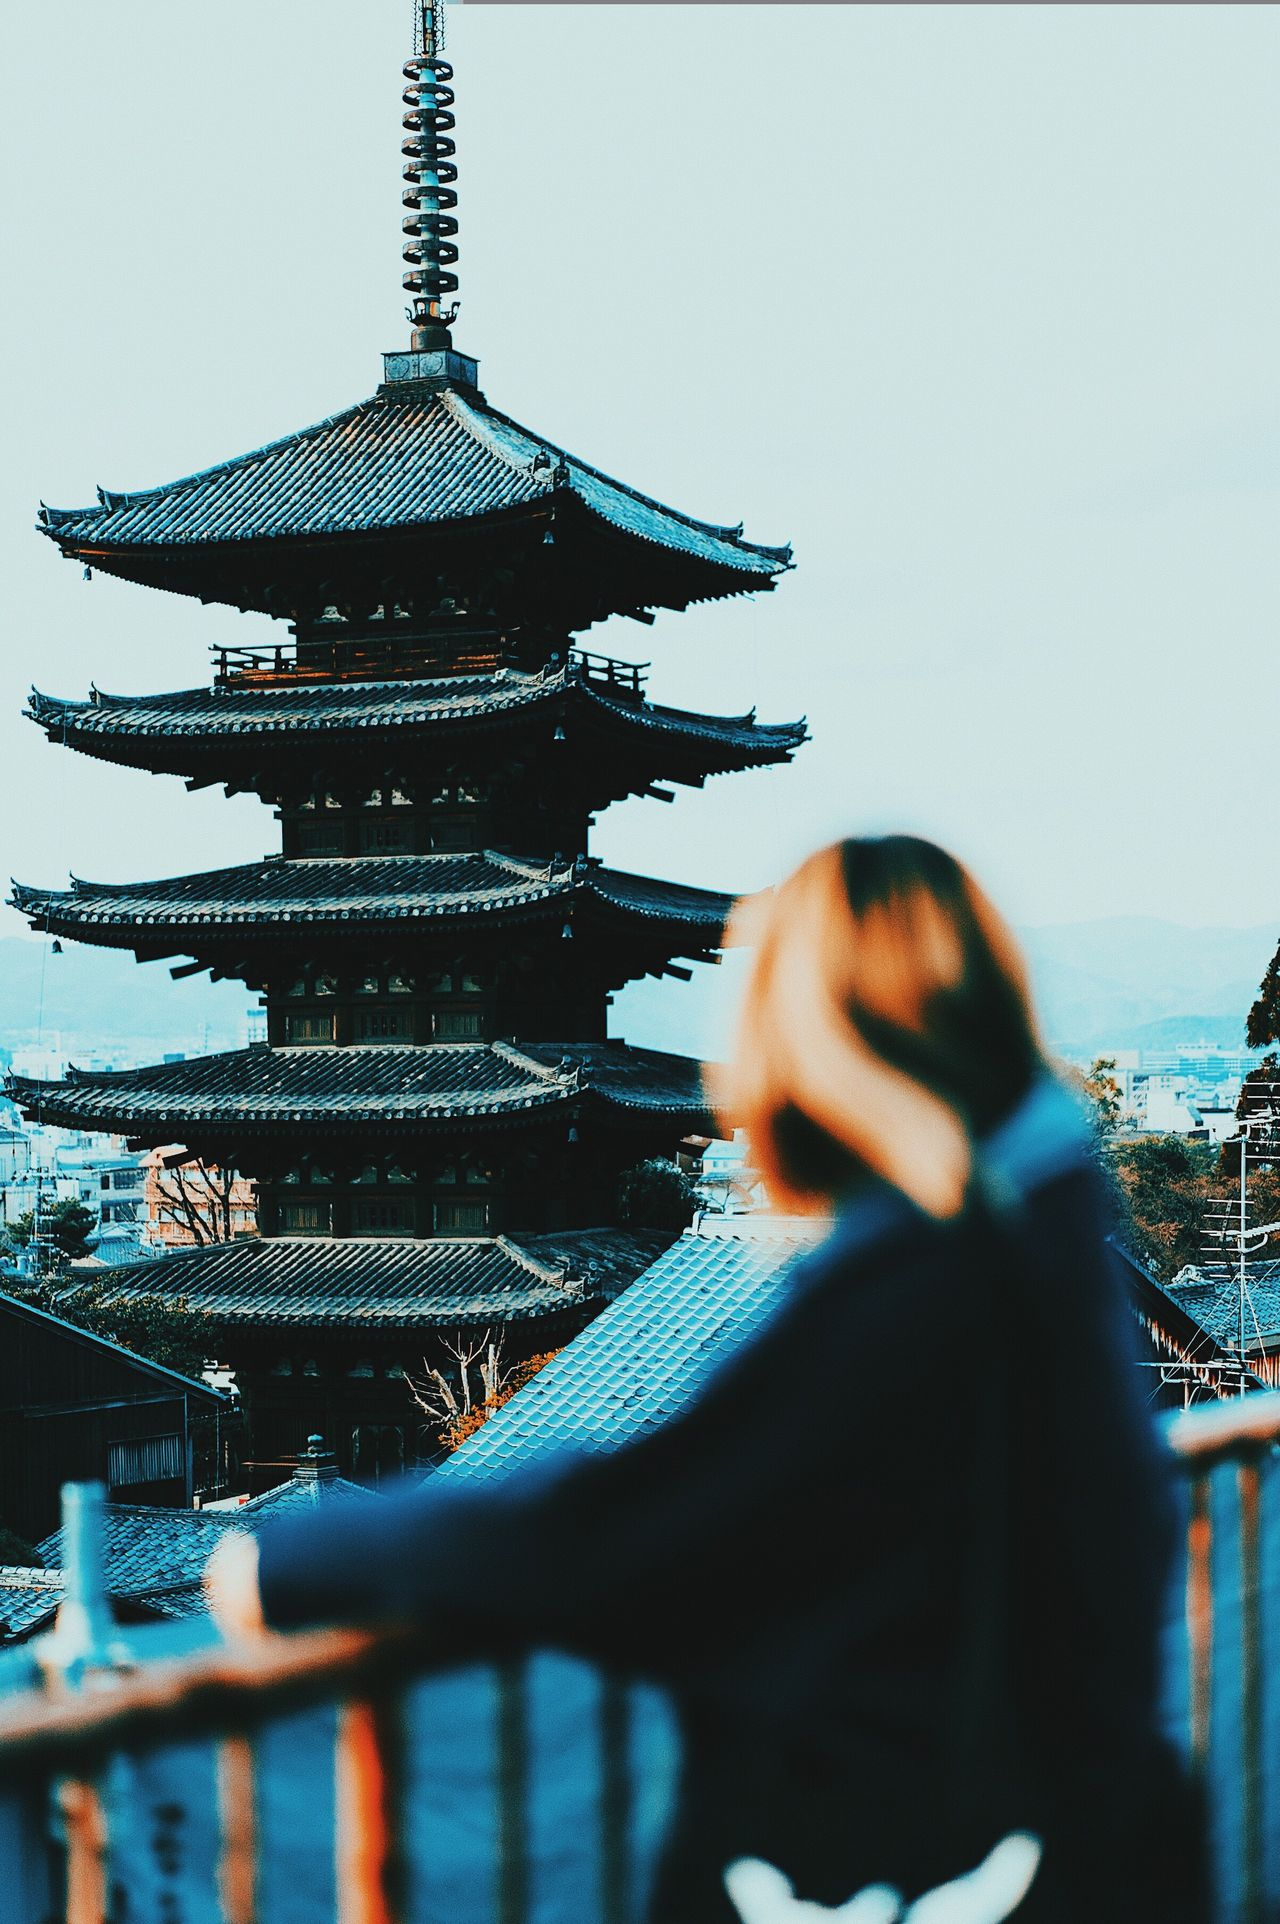 Kyoto, Japan 2017 Architecture Place Of Worship Cultures Kyoto, Japan Japanese Culture Building Exterior